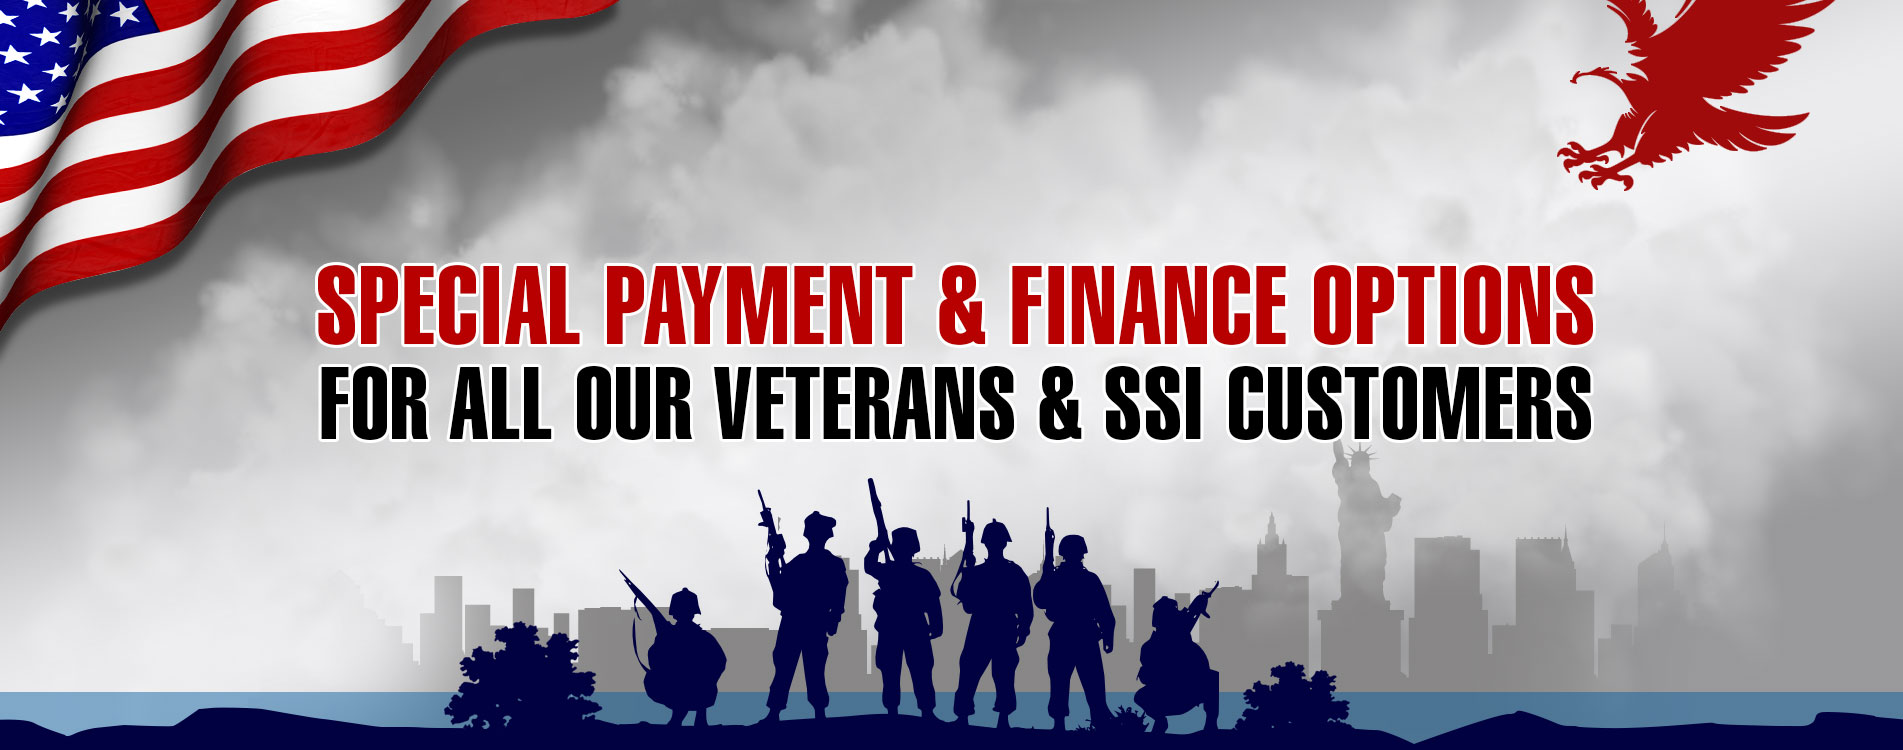 Special Payment and finance options for all Veterans and ssi customers